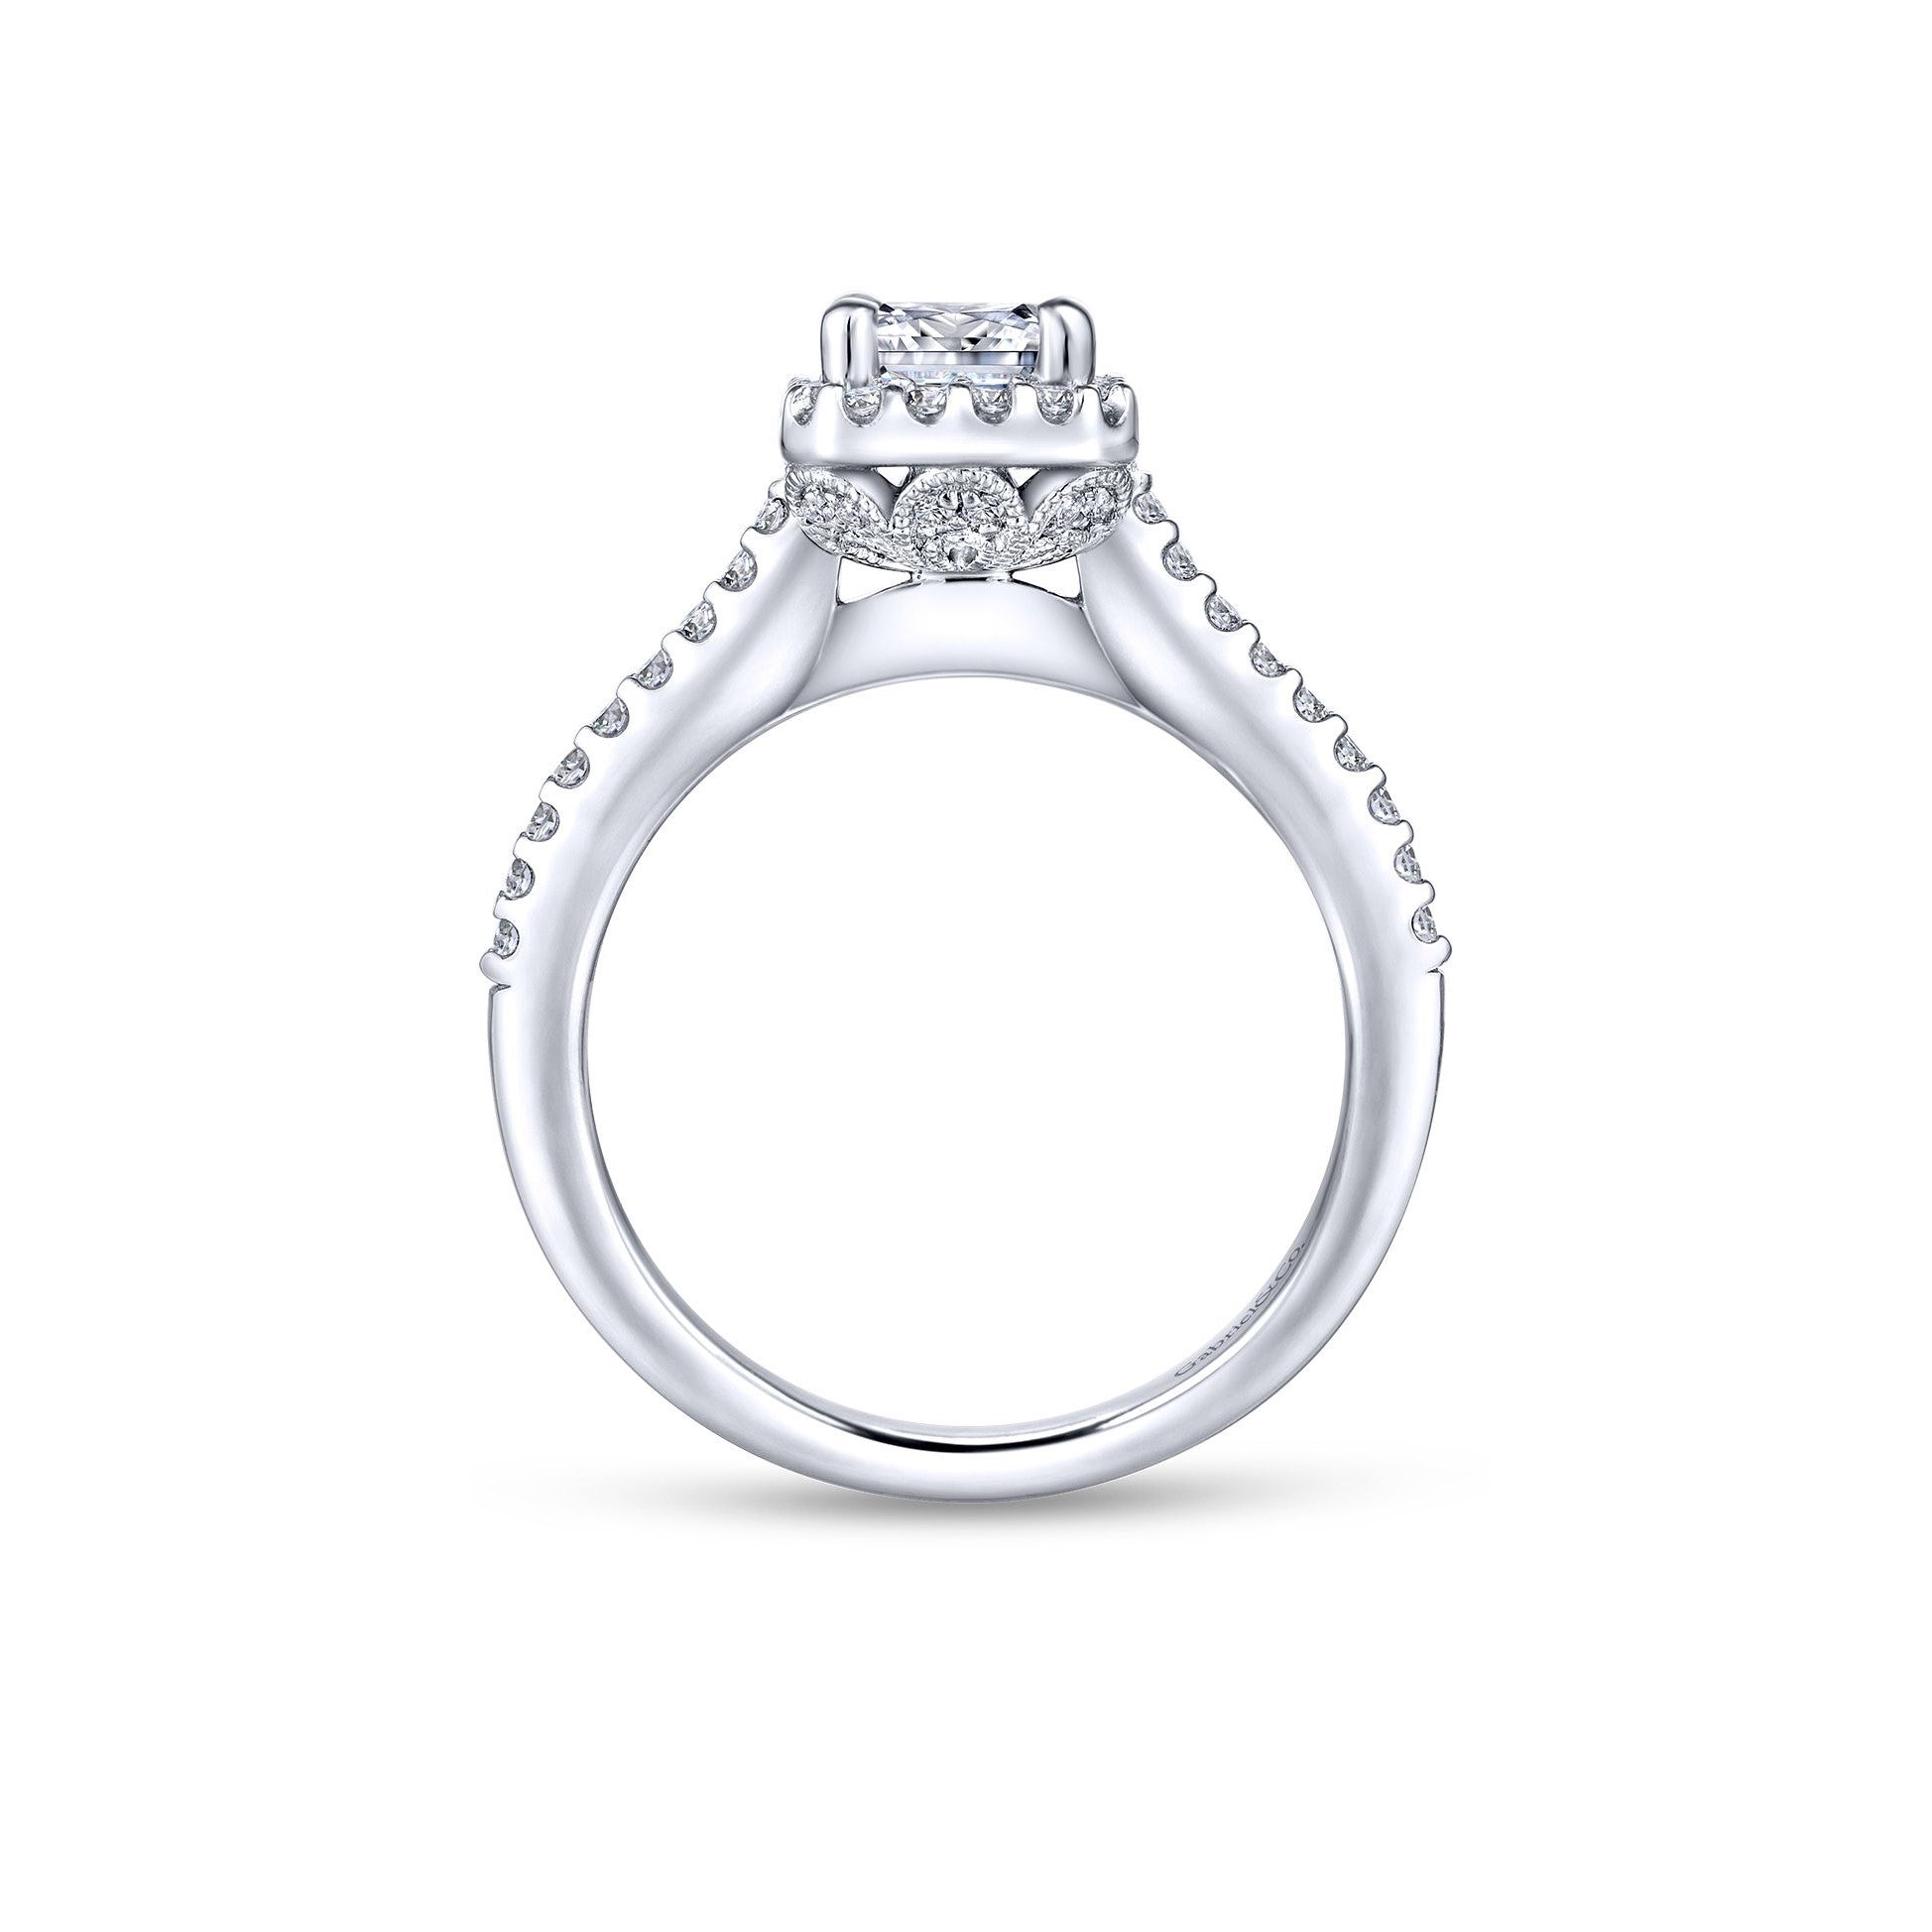 Gabriel & Co. 14k White Gold Emerald Cut Diamond Engagement Ring